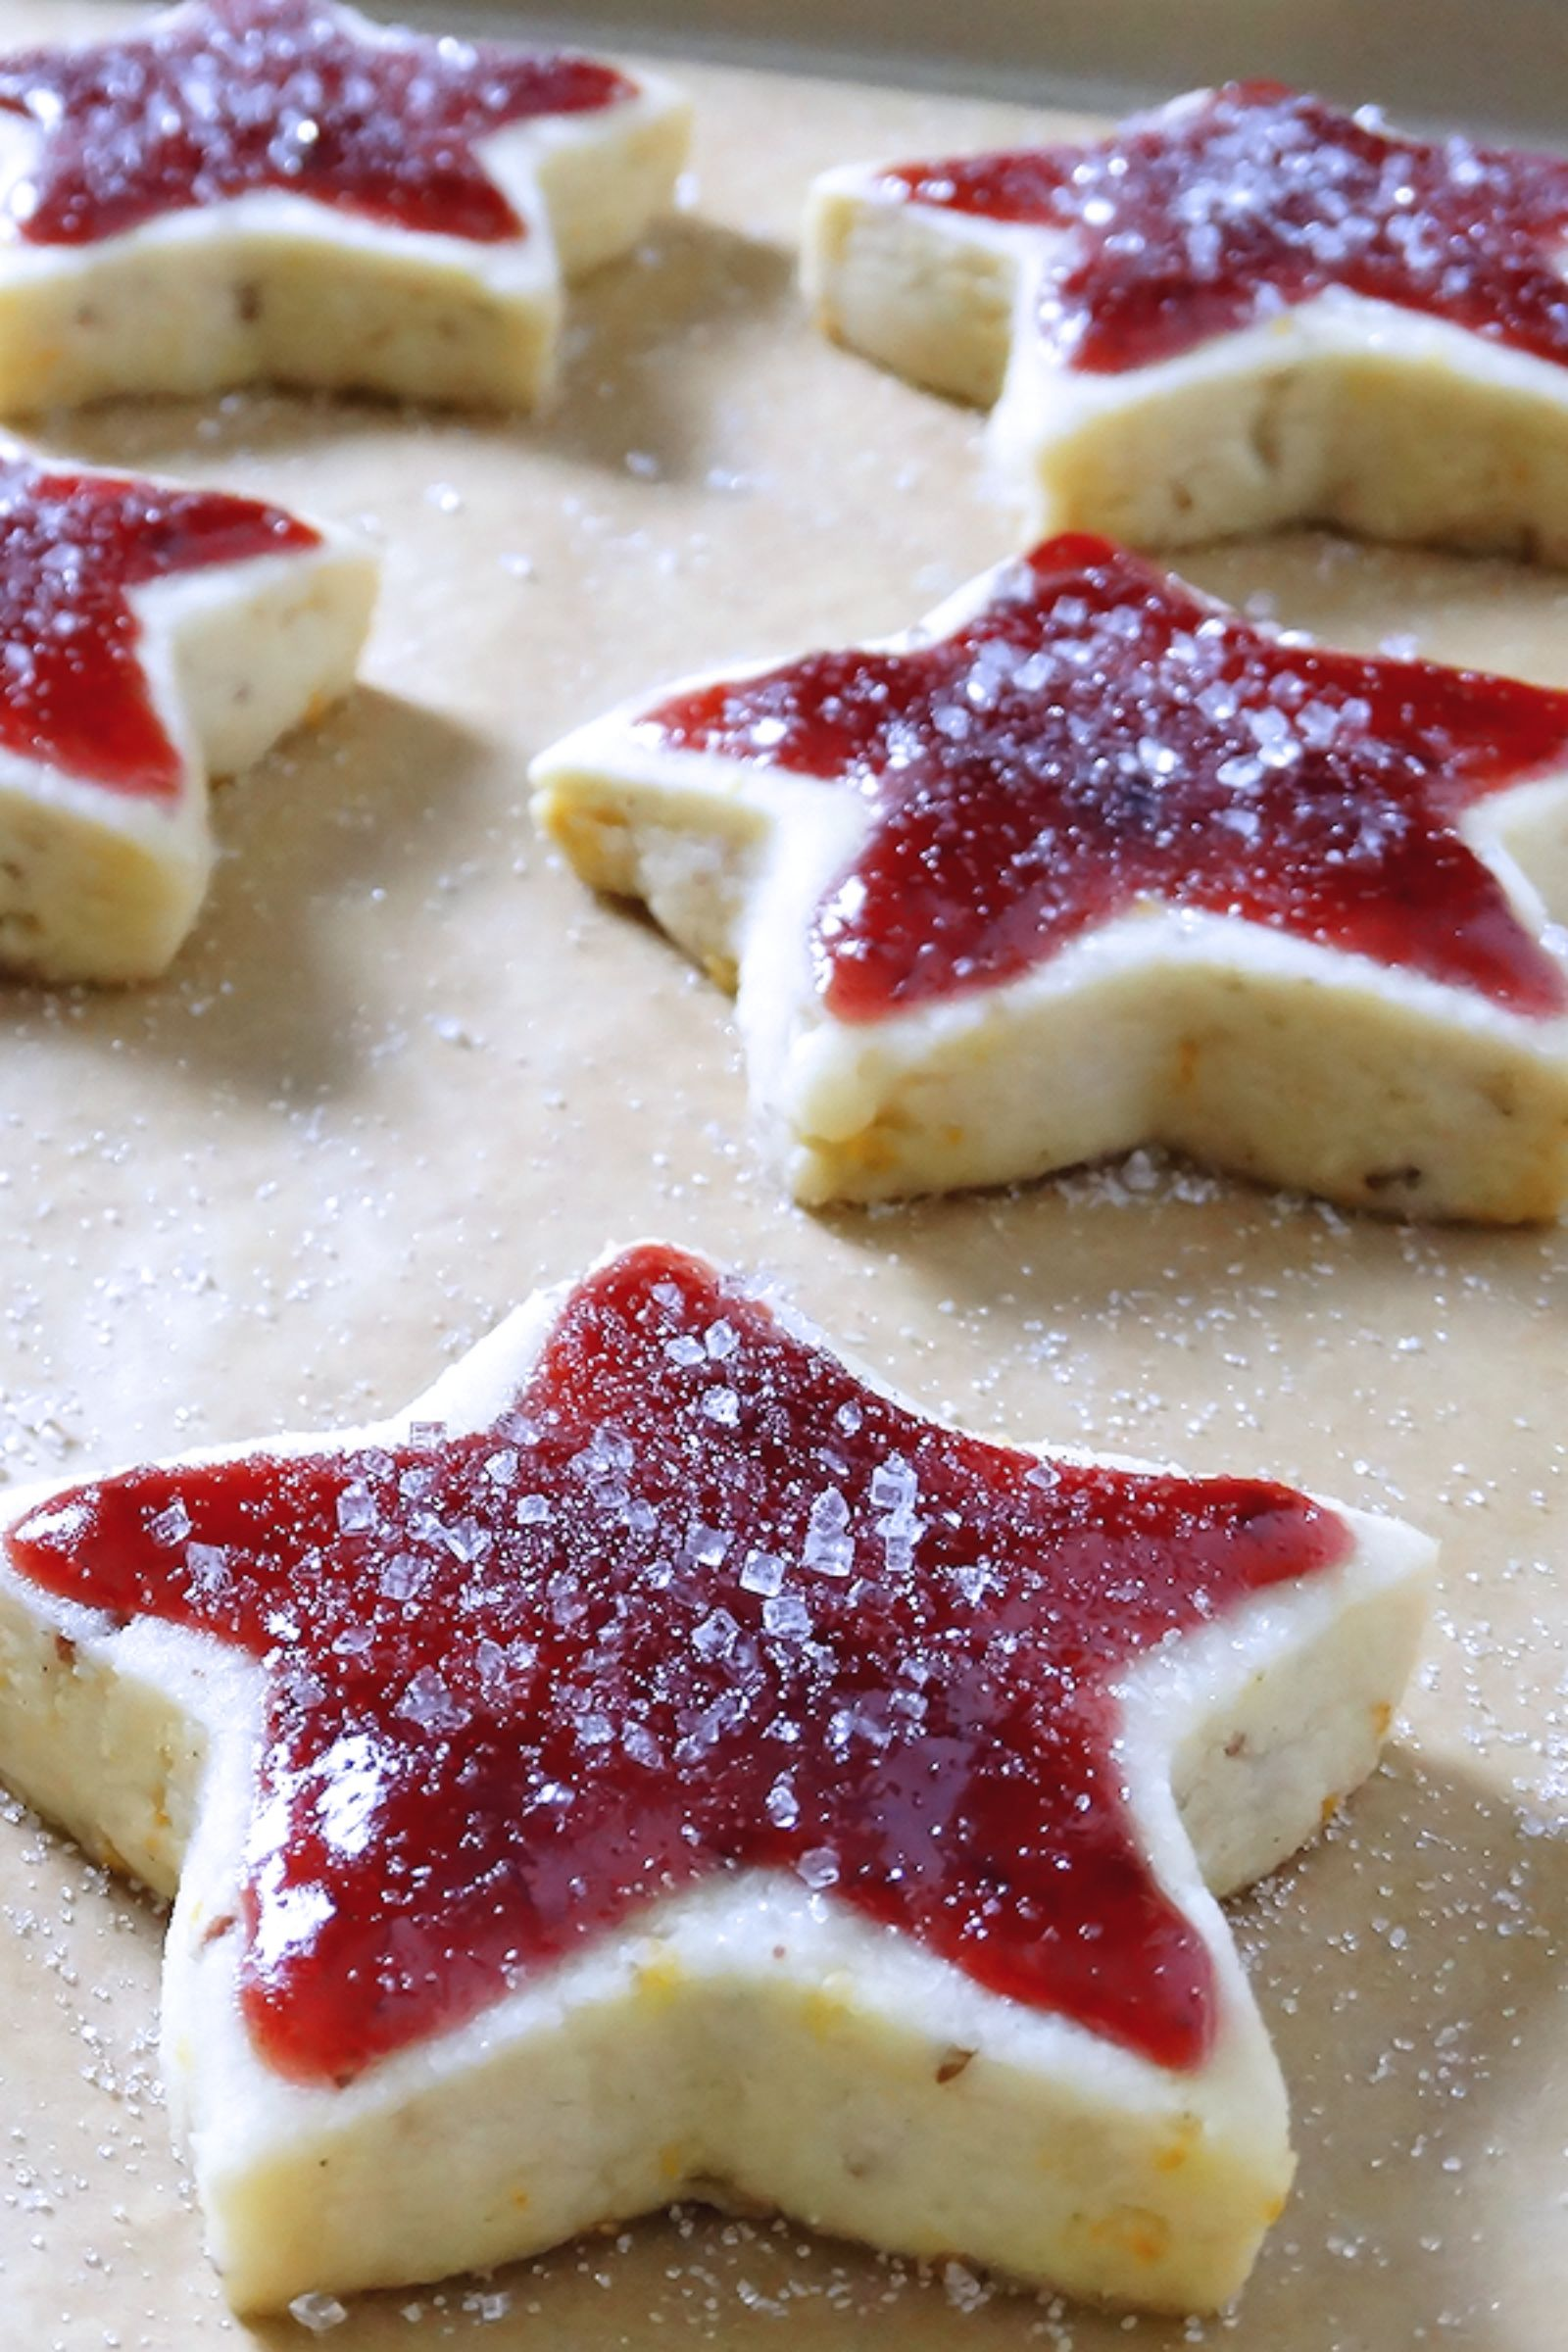 20 Best Christmas Biscuits Recipes - How to Make Easy Christmas Biscuits